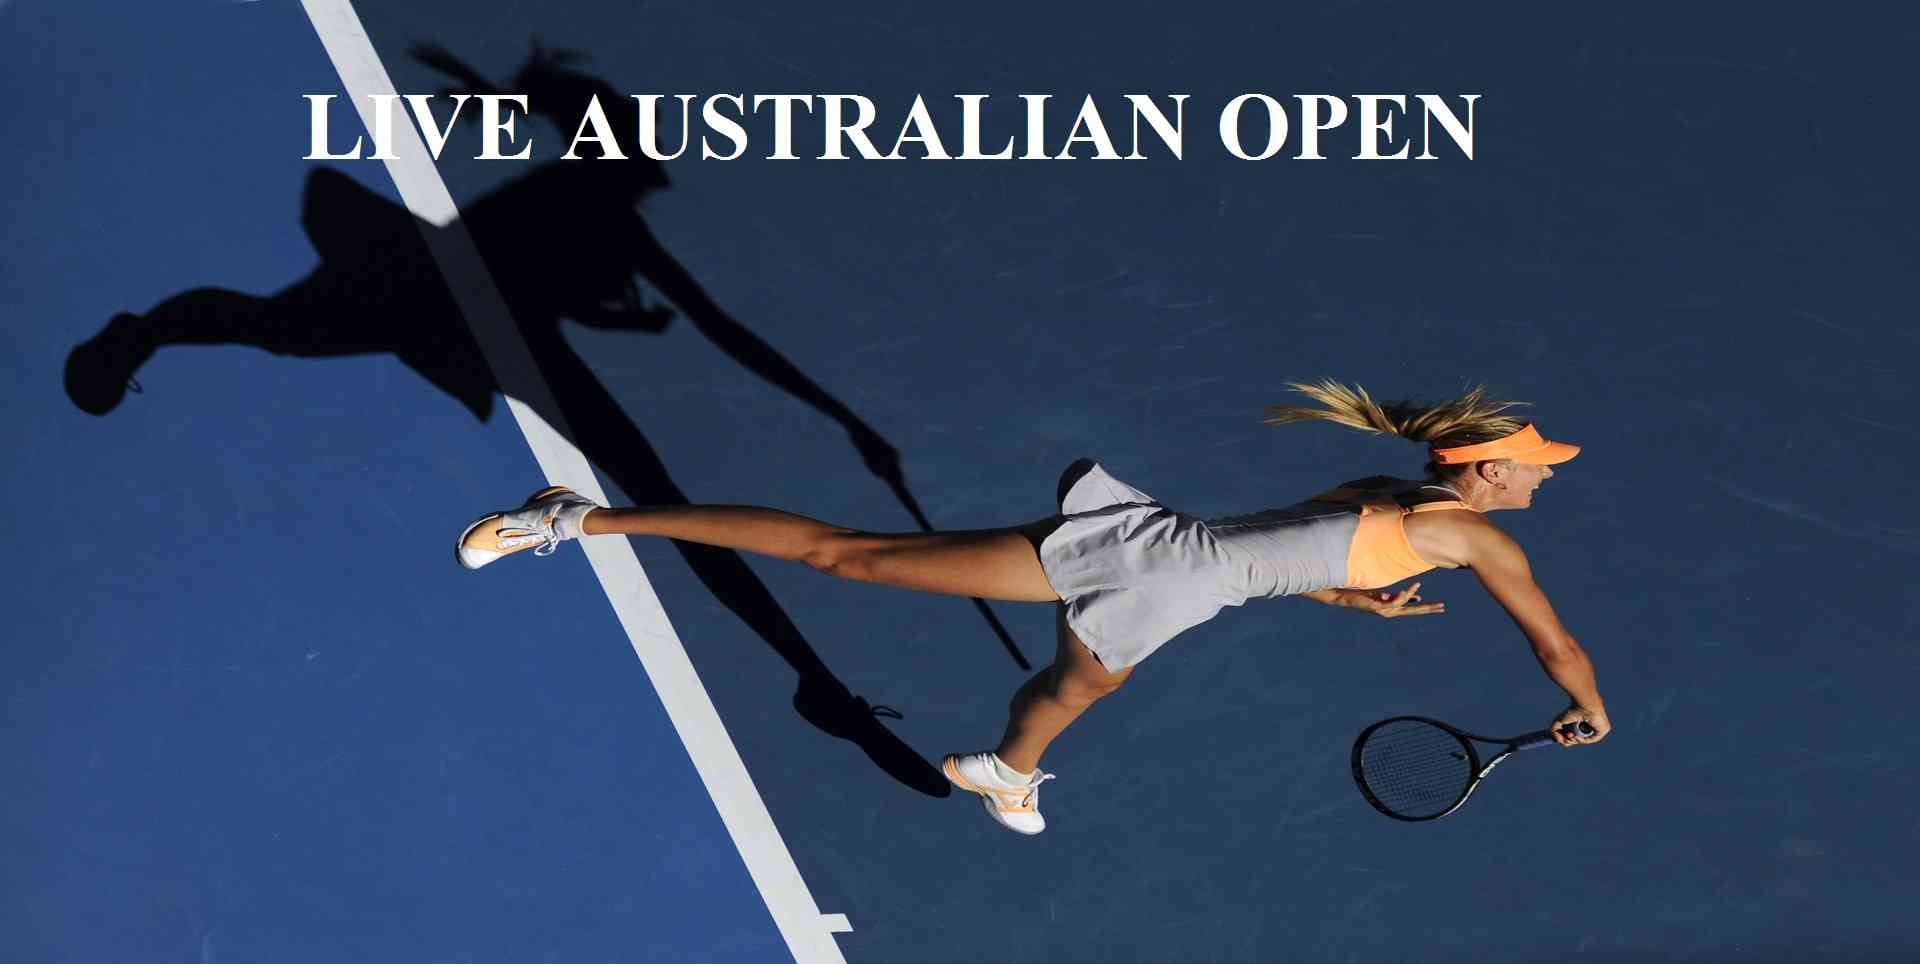 second Round Australian Open 2017 live